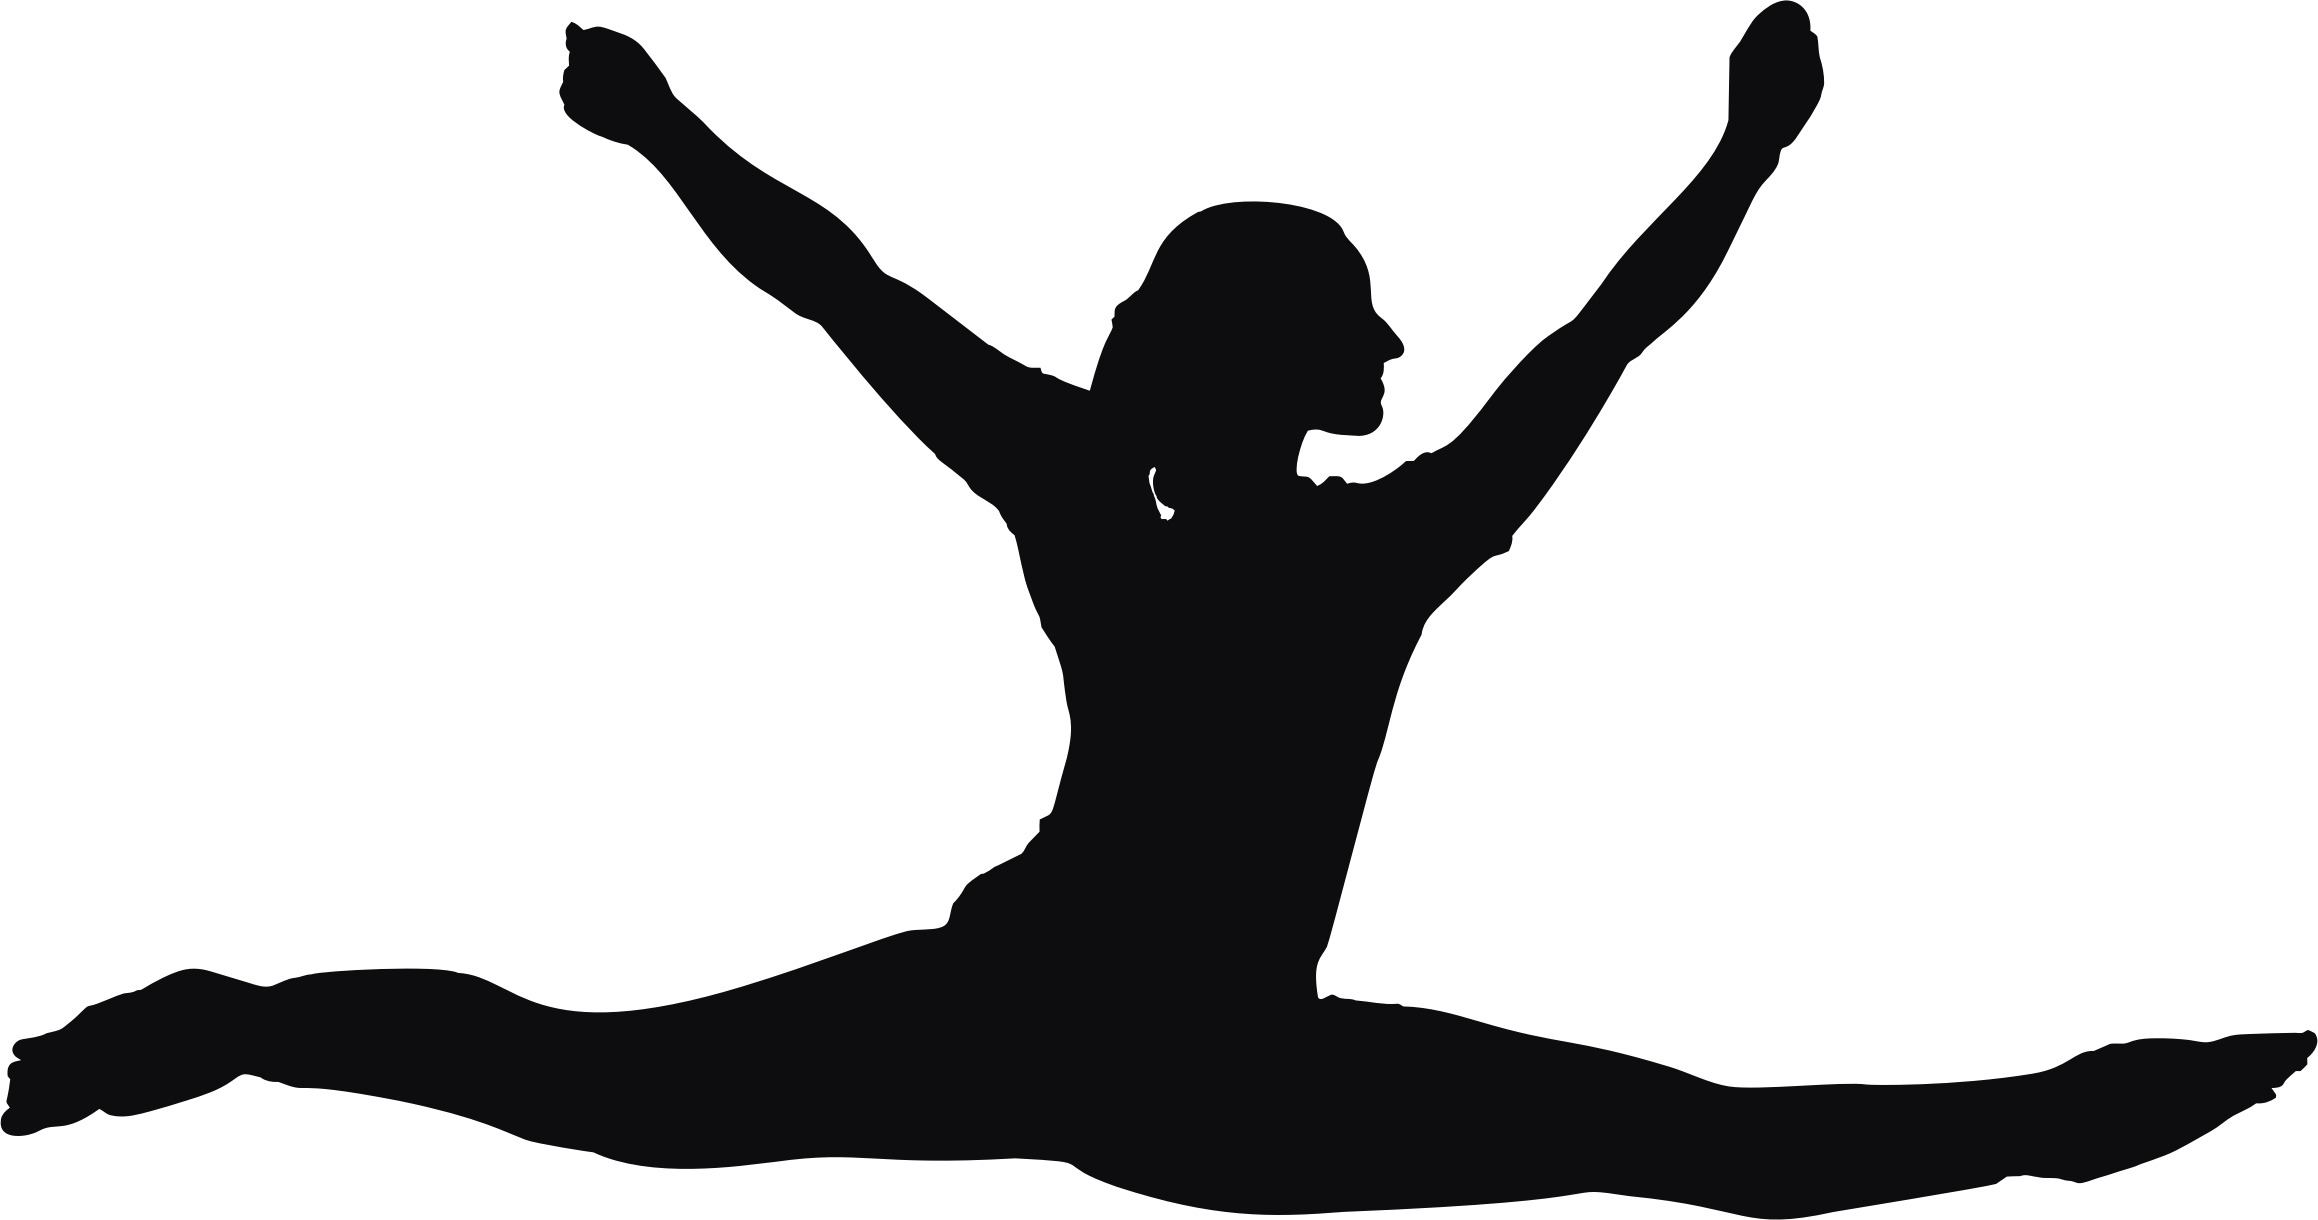 Circus clipart silhouette. Performer at getdrawings com